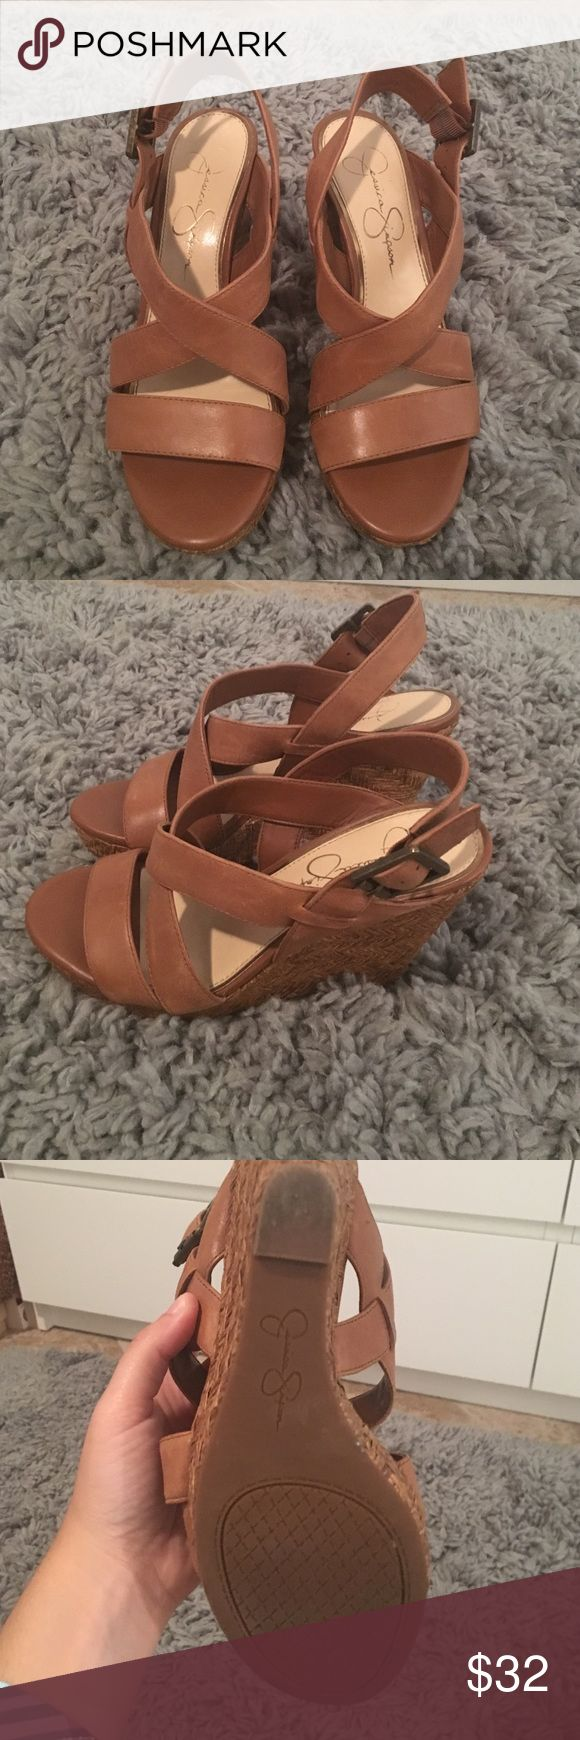 Barely worn Jessica Simpson wedges Beautiful barely worn Jessica Simpson wedges! Has a 4 inch wedge and adjustable straps. Brown leather on the straps and cork heels. Perfect for the summer :) extremely comfortable and no signs of wear. The bottom of the shoes barely look worn. Size 6 Jessica Simpson Shoes Wedges